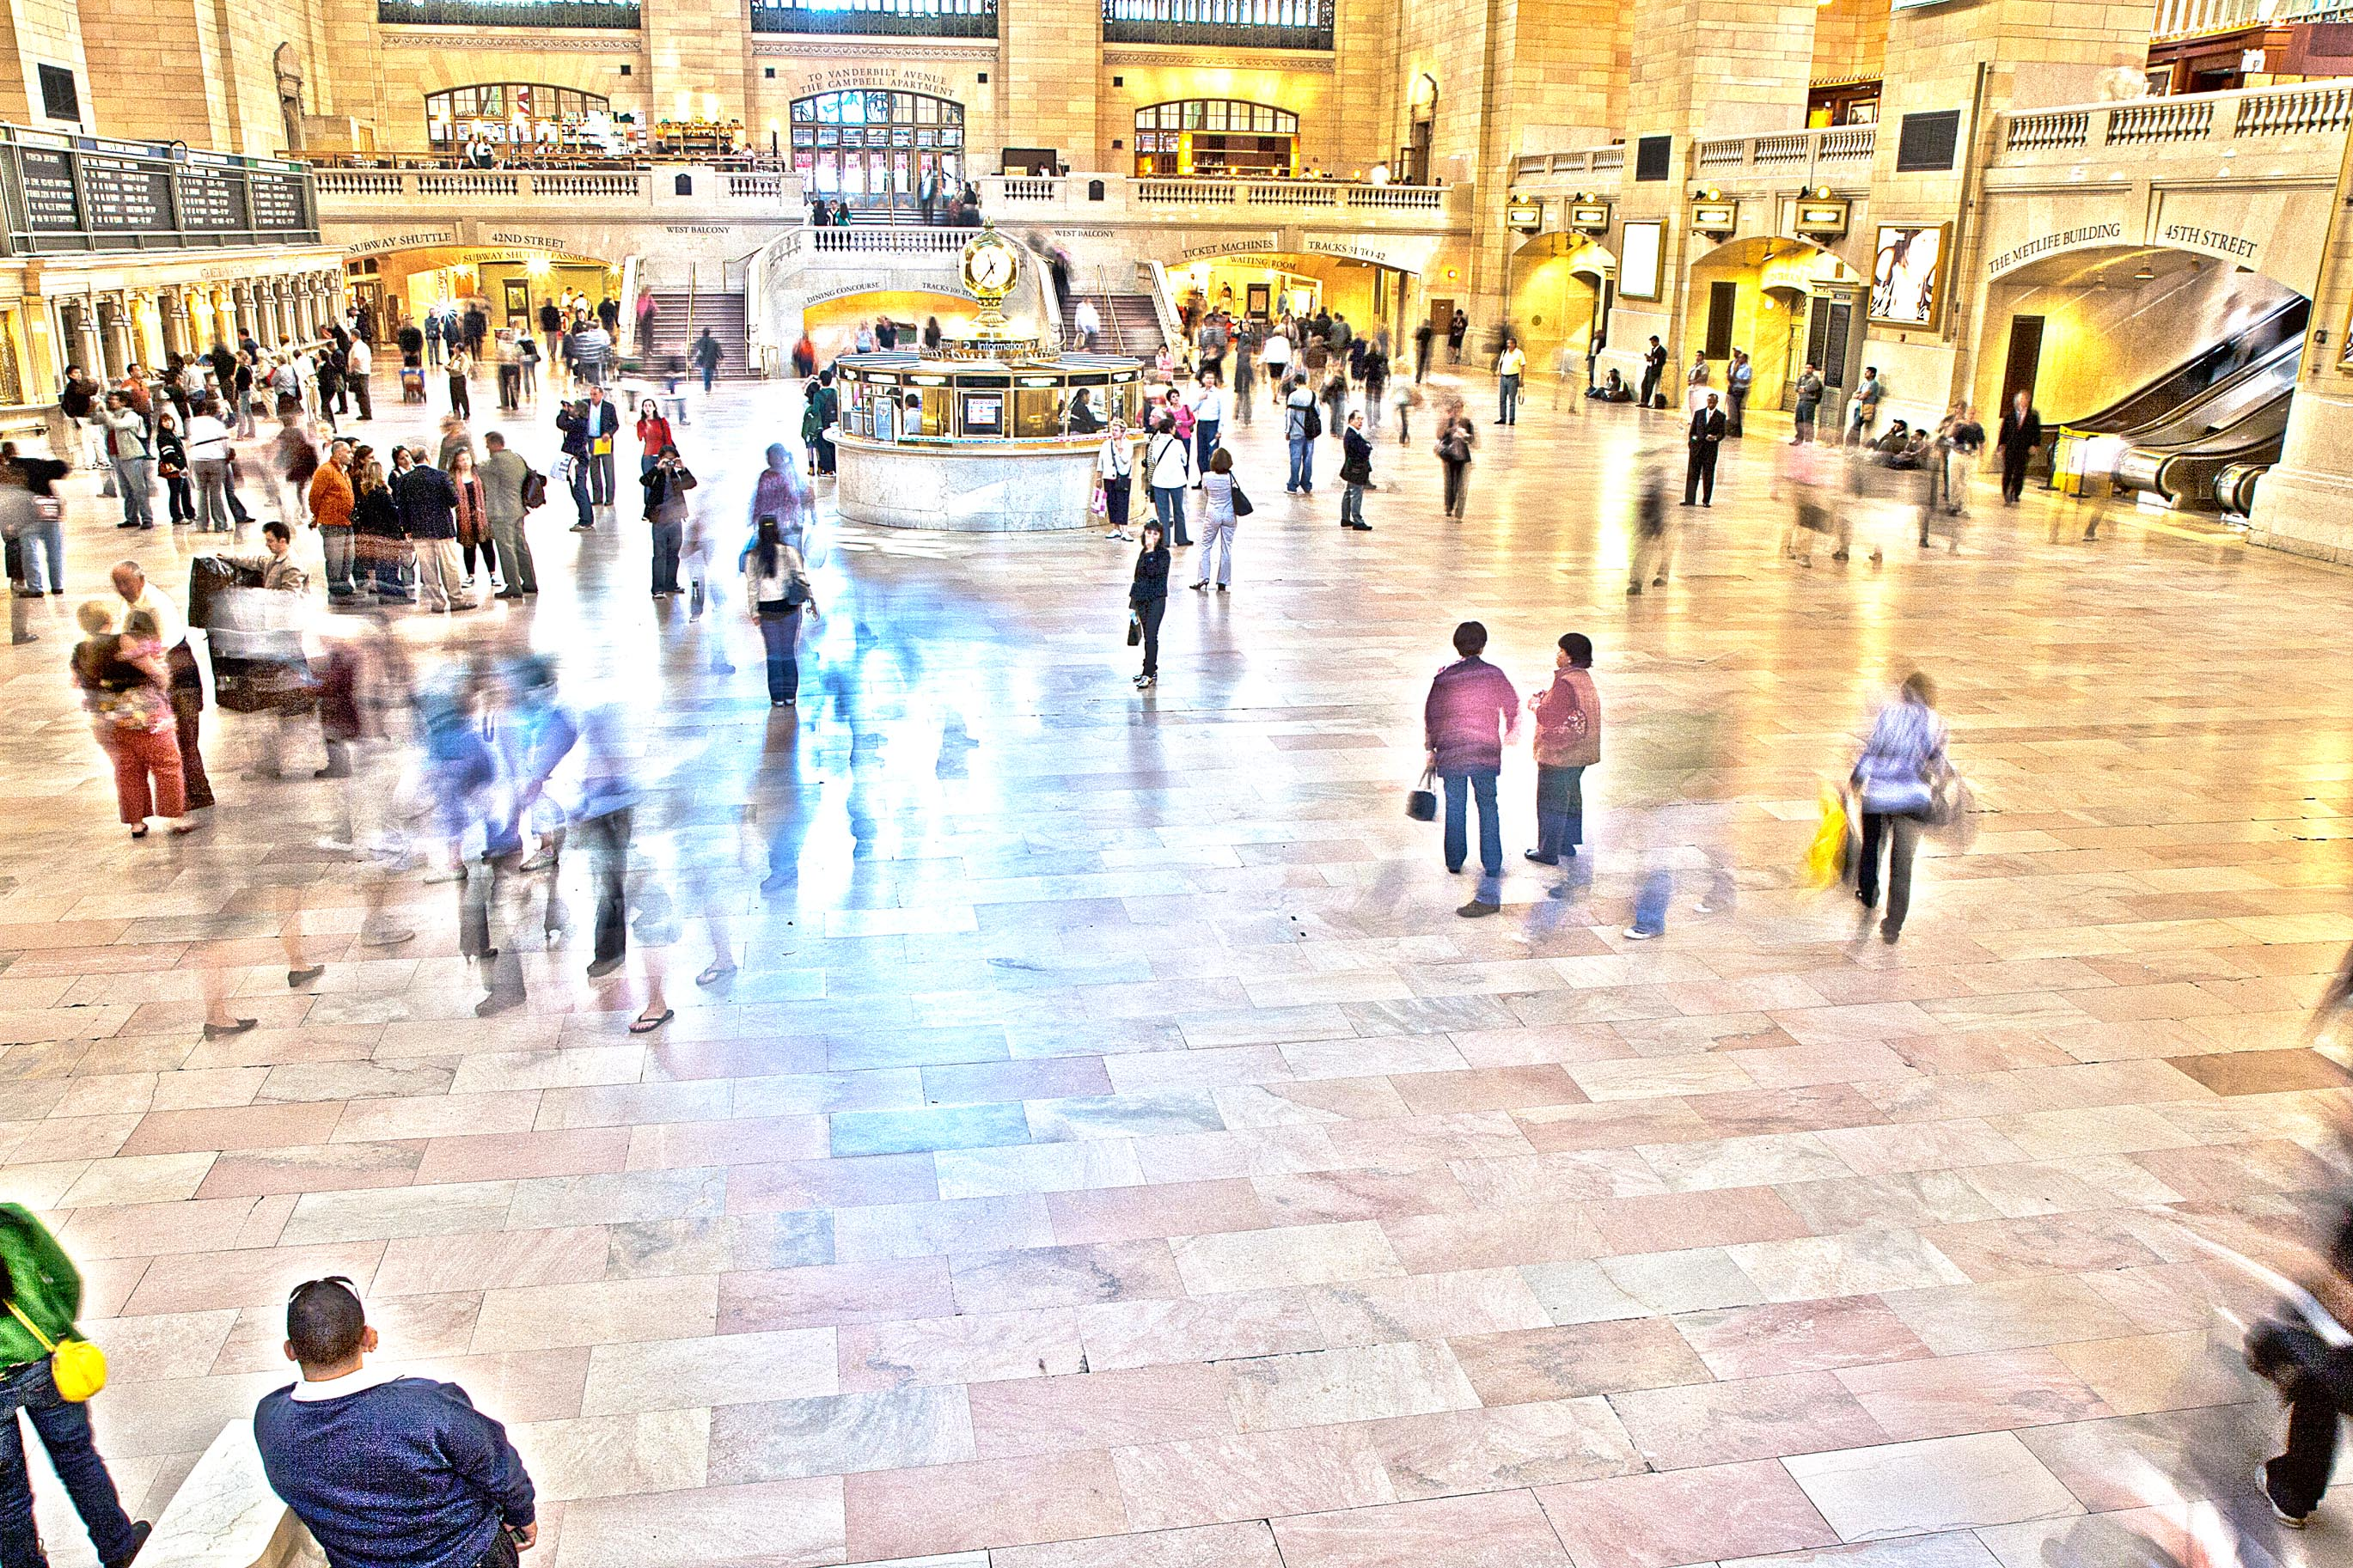 People in Grand Central Terminal – HDR